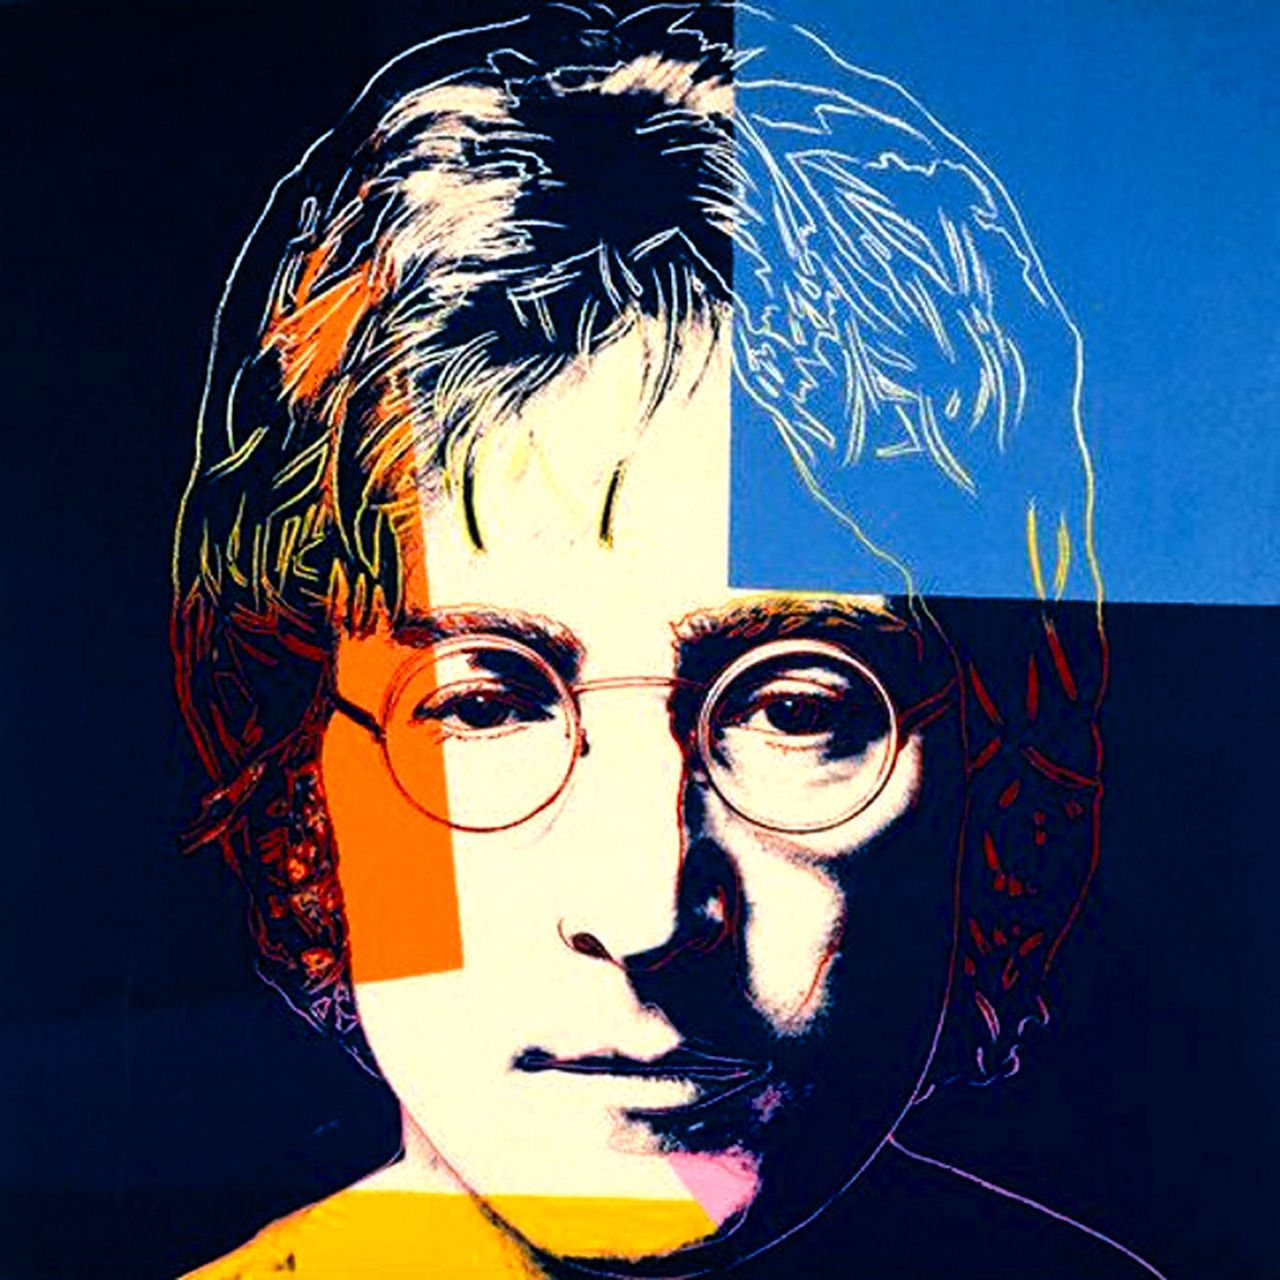 Navy Blue John, by Andy Warhol #andywarhol